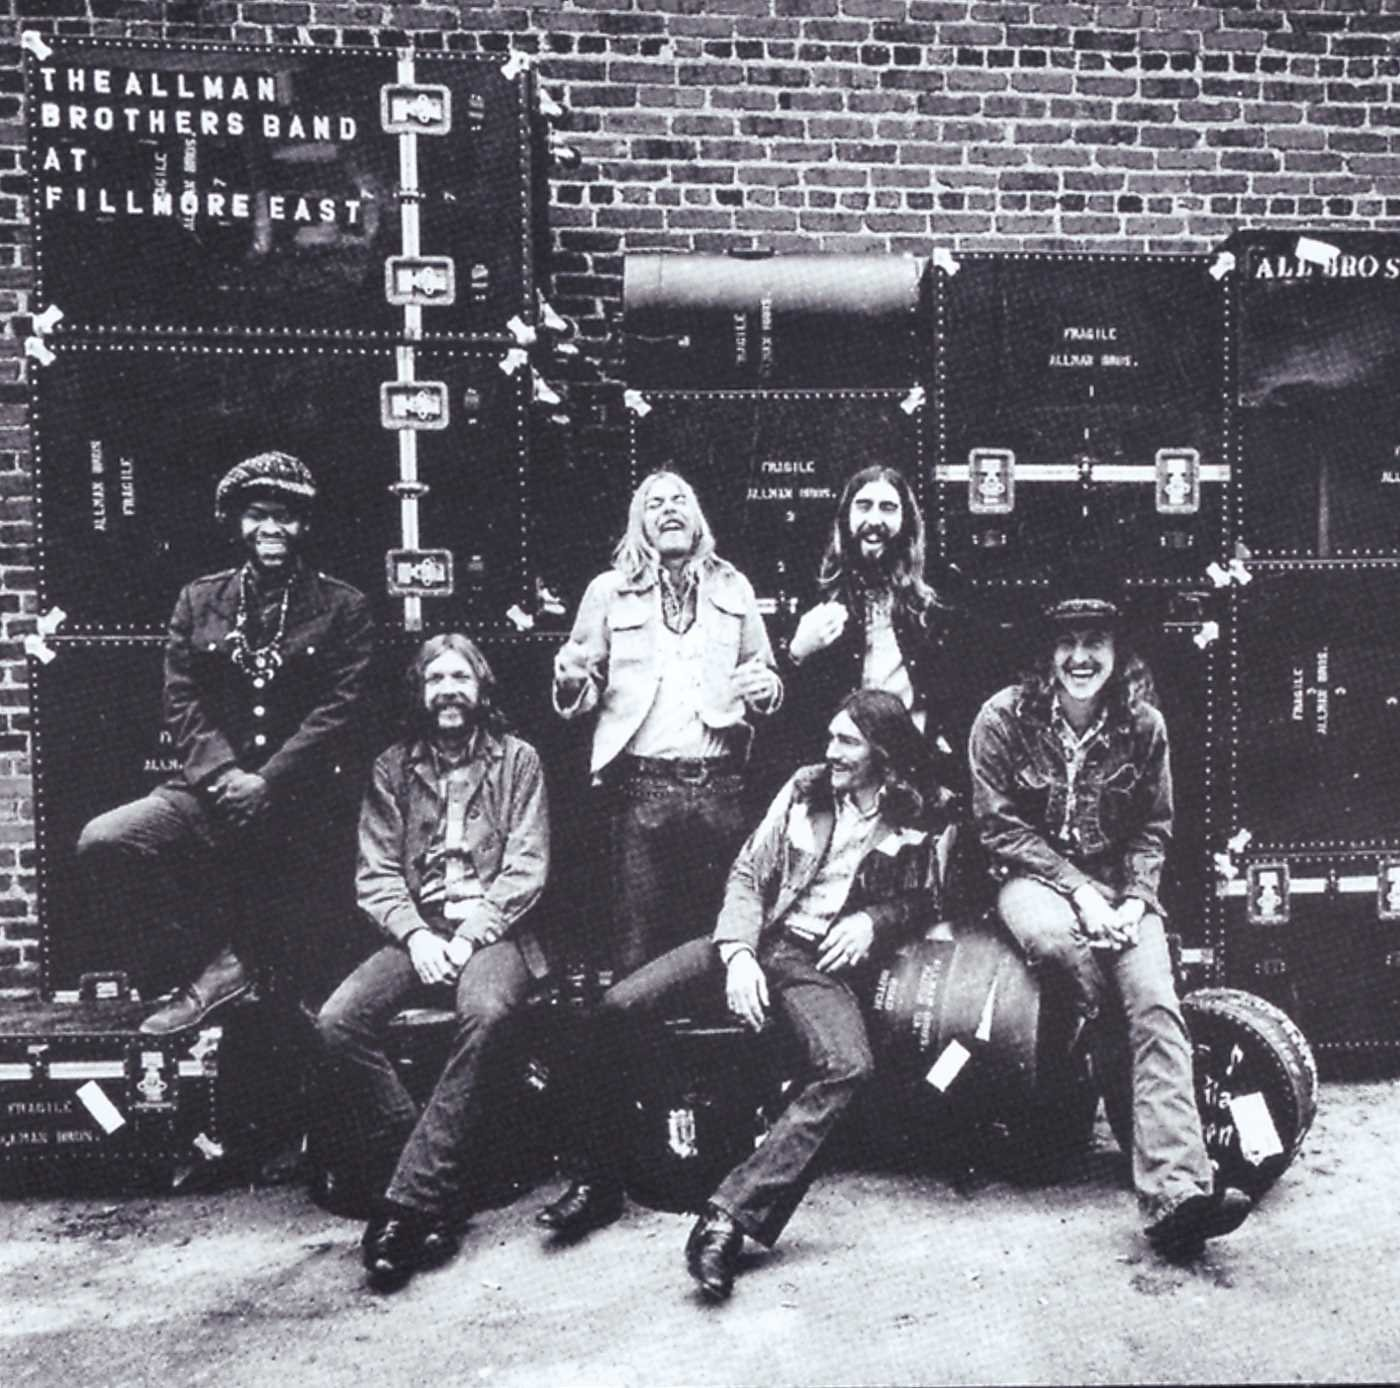 THE ALLMAN BROTHERS FILMORE